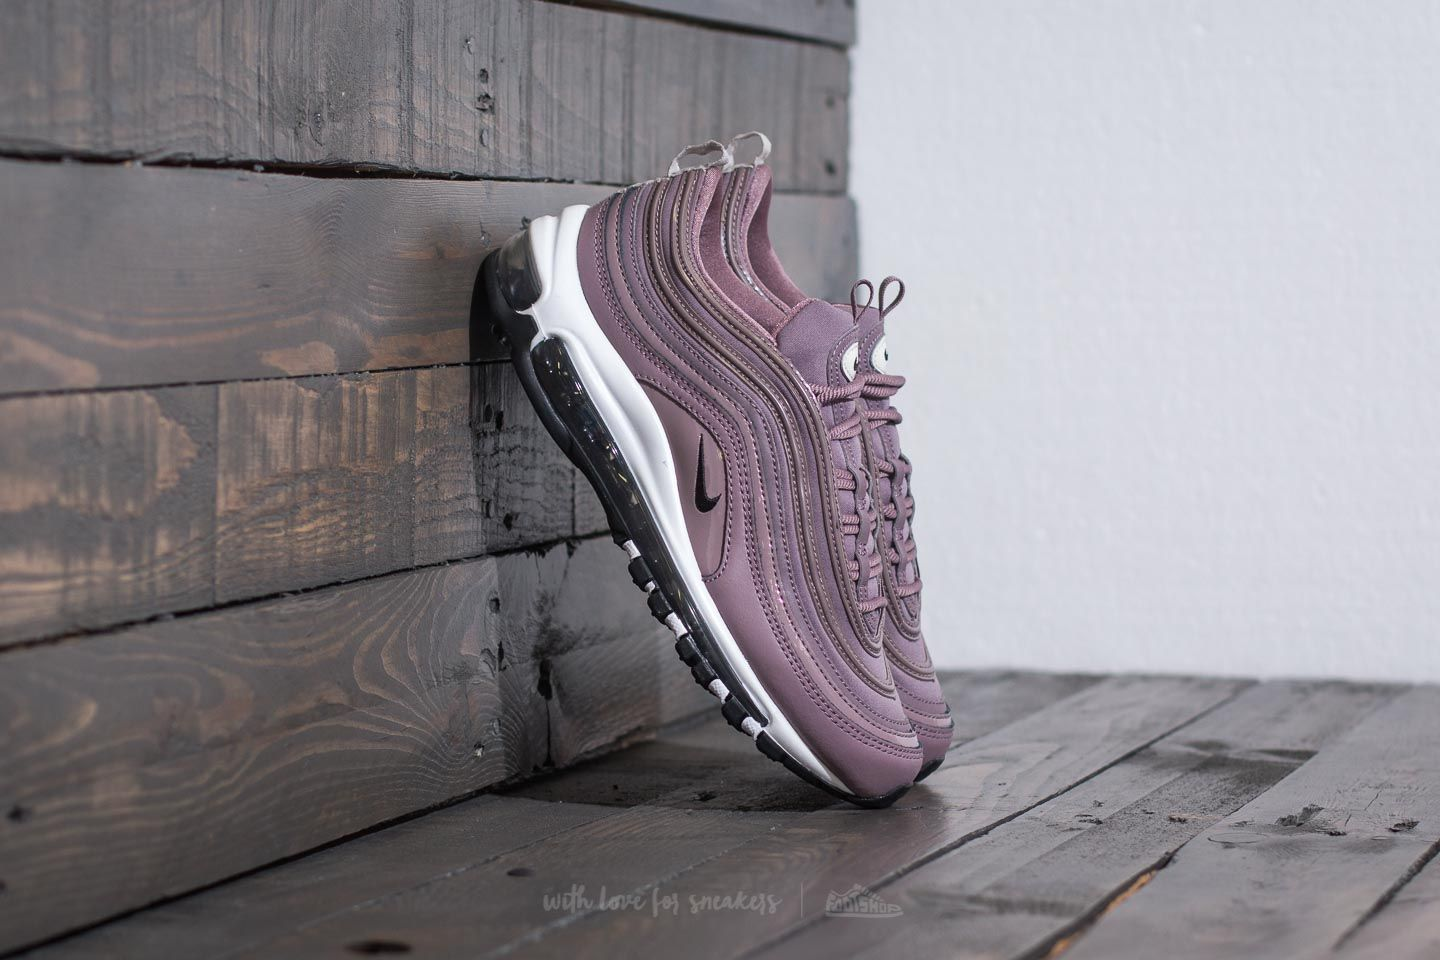 d4940139ea Nike W Air Max 97 Premium Taupe Grey/ Light Bone/ Black | Footshop